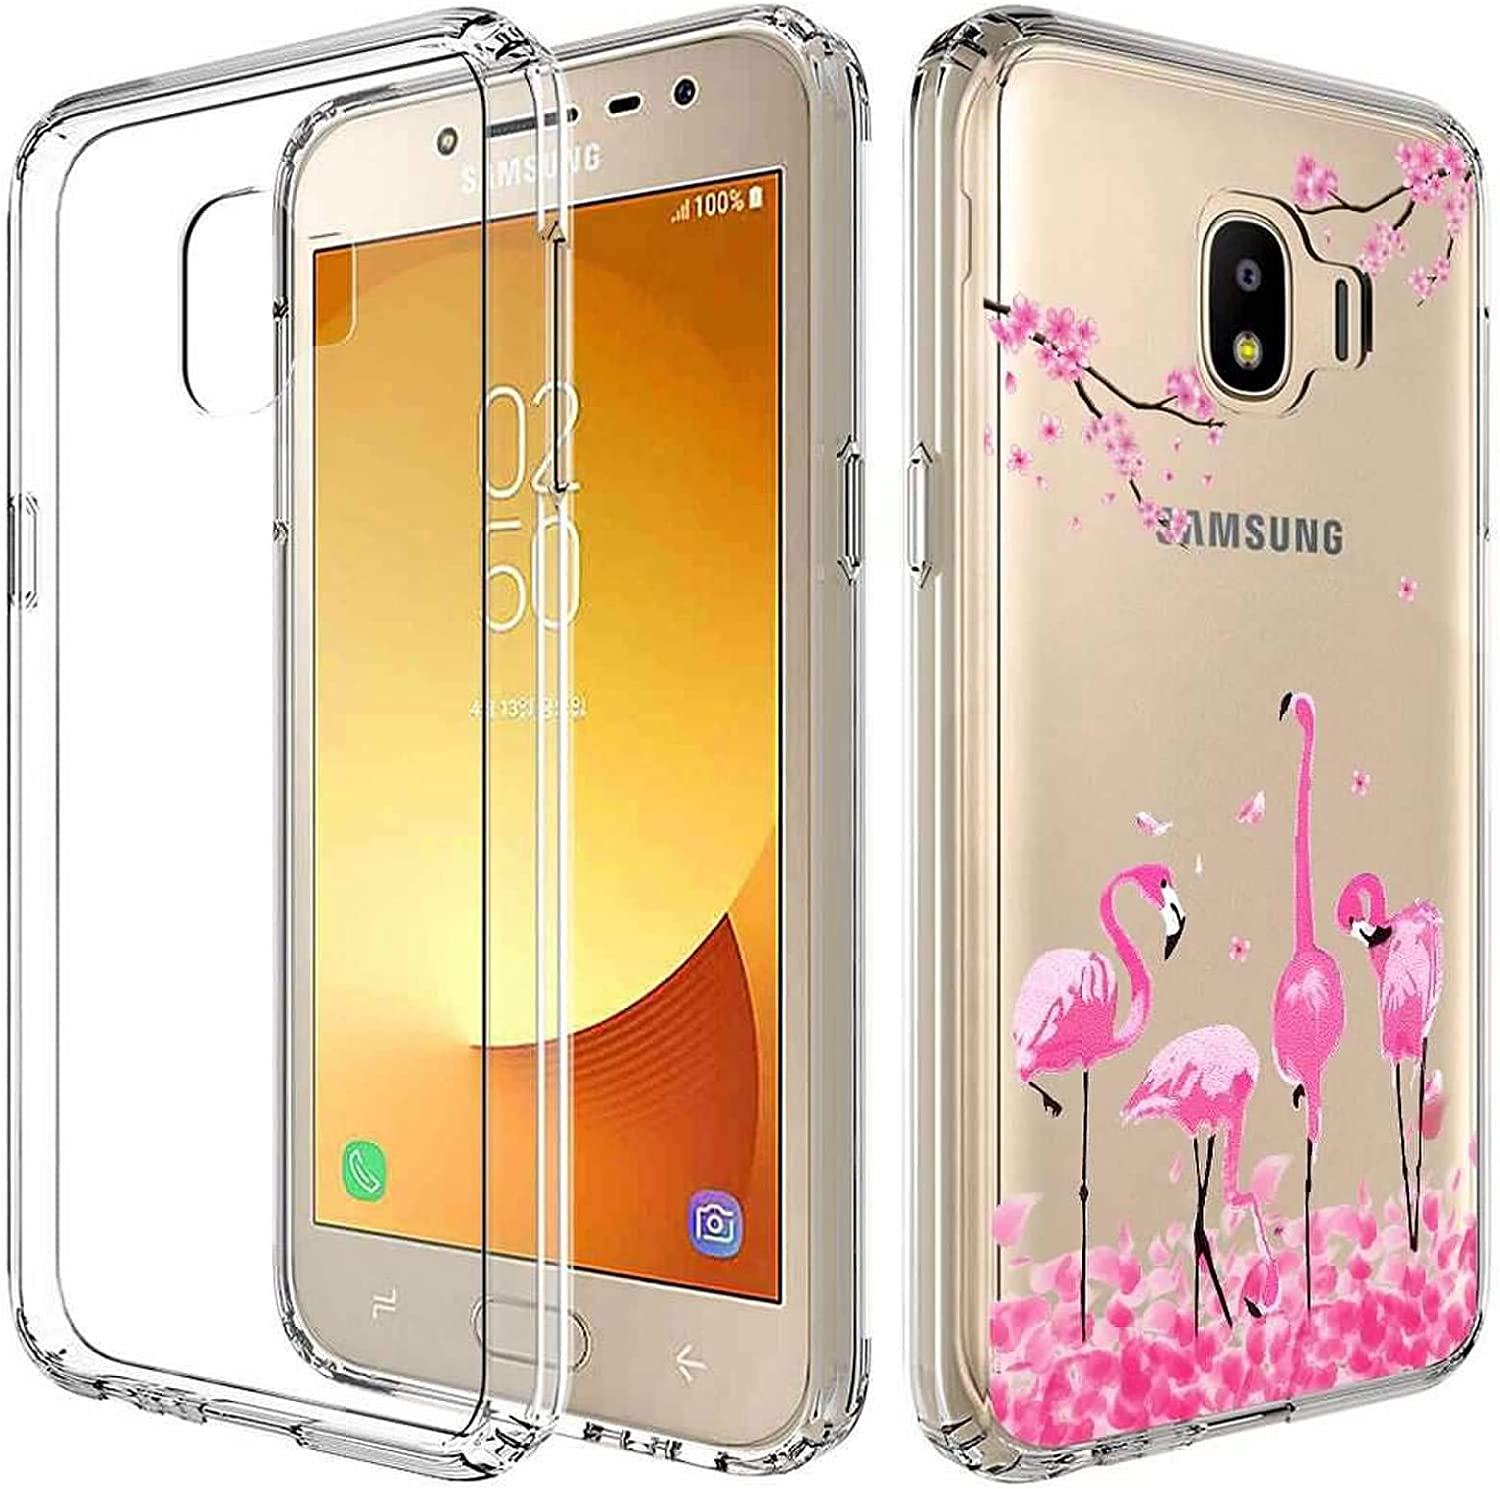 2019 Flamingo Glass Screen Protector Slim Clear Soft TPU Silicone Phone Case Cover with 3 in 1 2 Pack for Galaxy J2 core//Galaxy J2 Dash//J2 Pure//J260 Case + Transparent for Samsung Galaxy J2